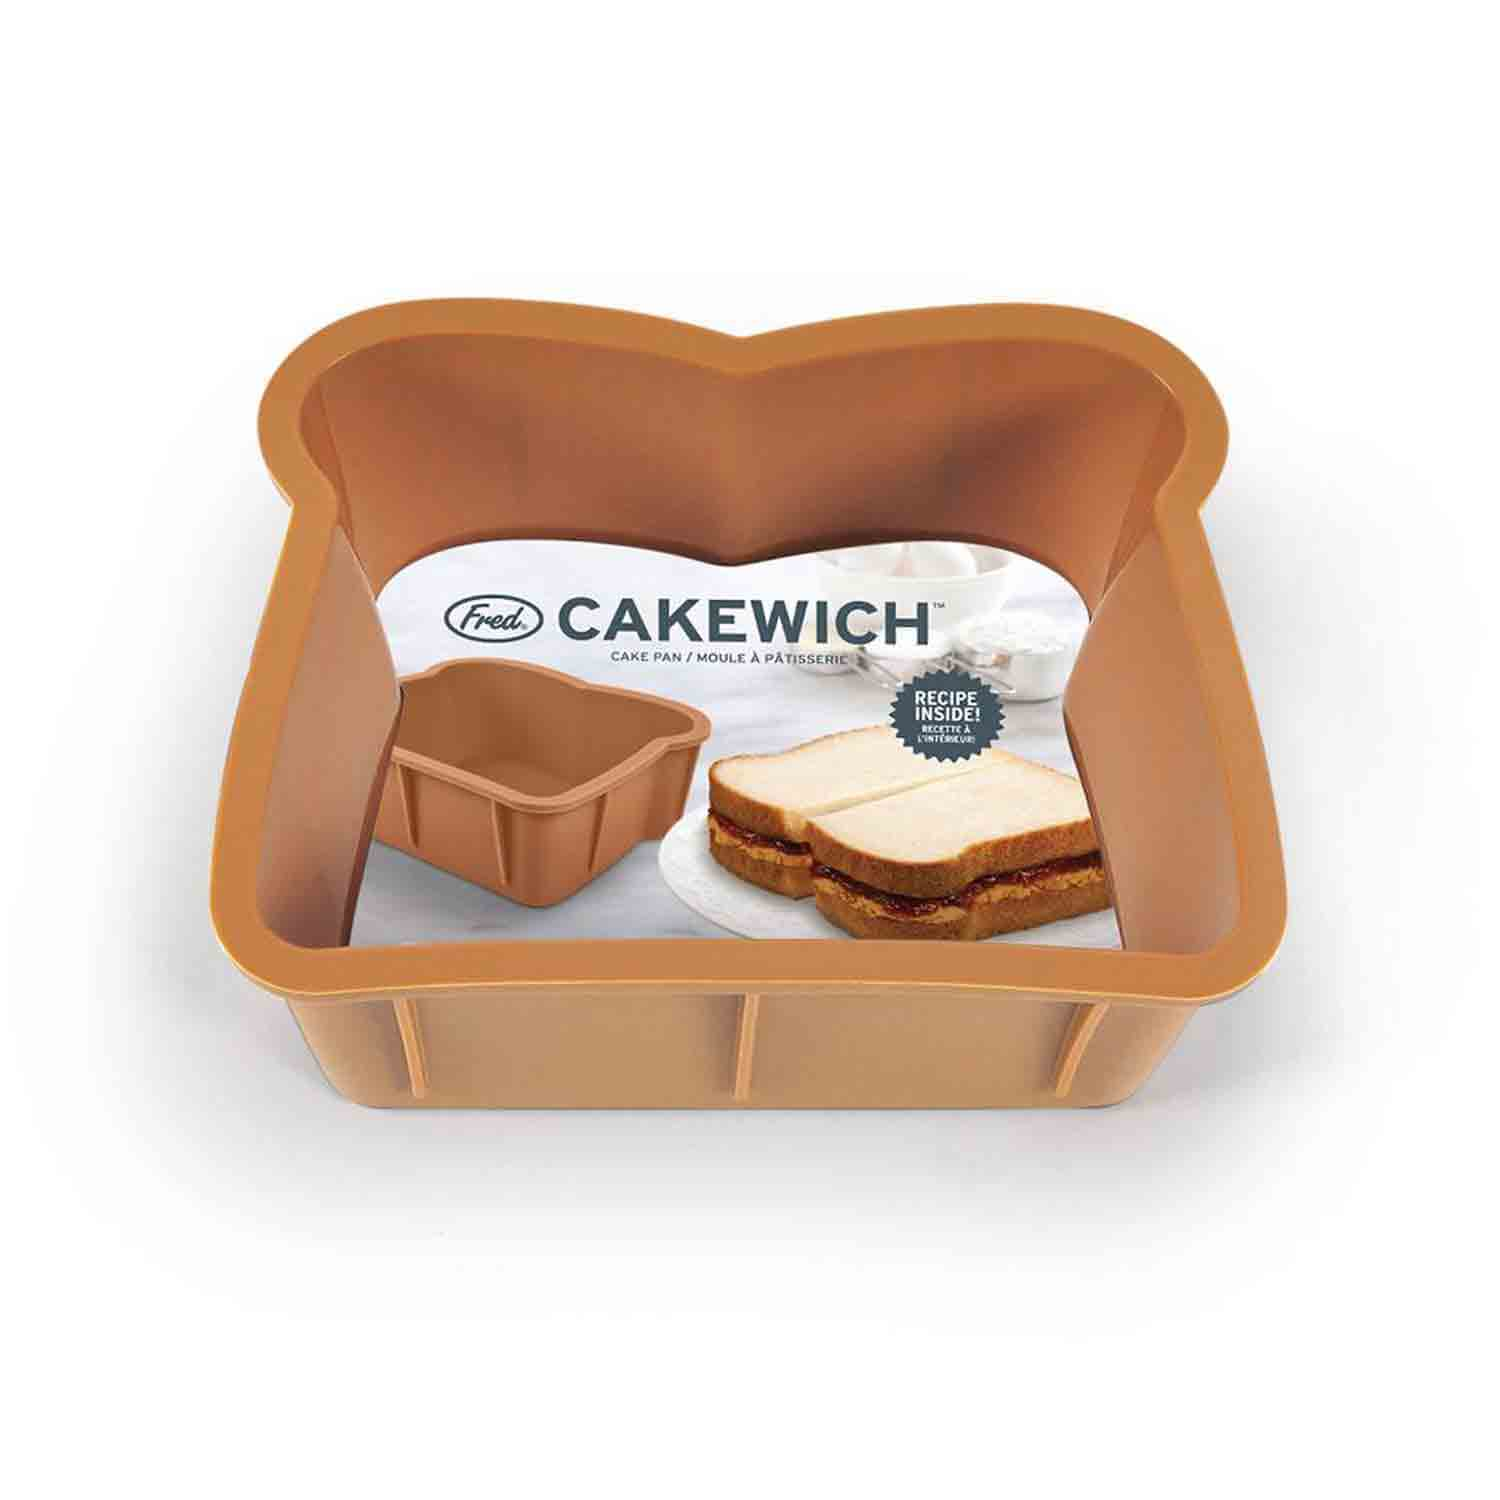 Cakewich Sandwich Silicone Cake Pan